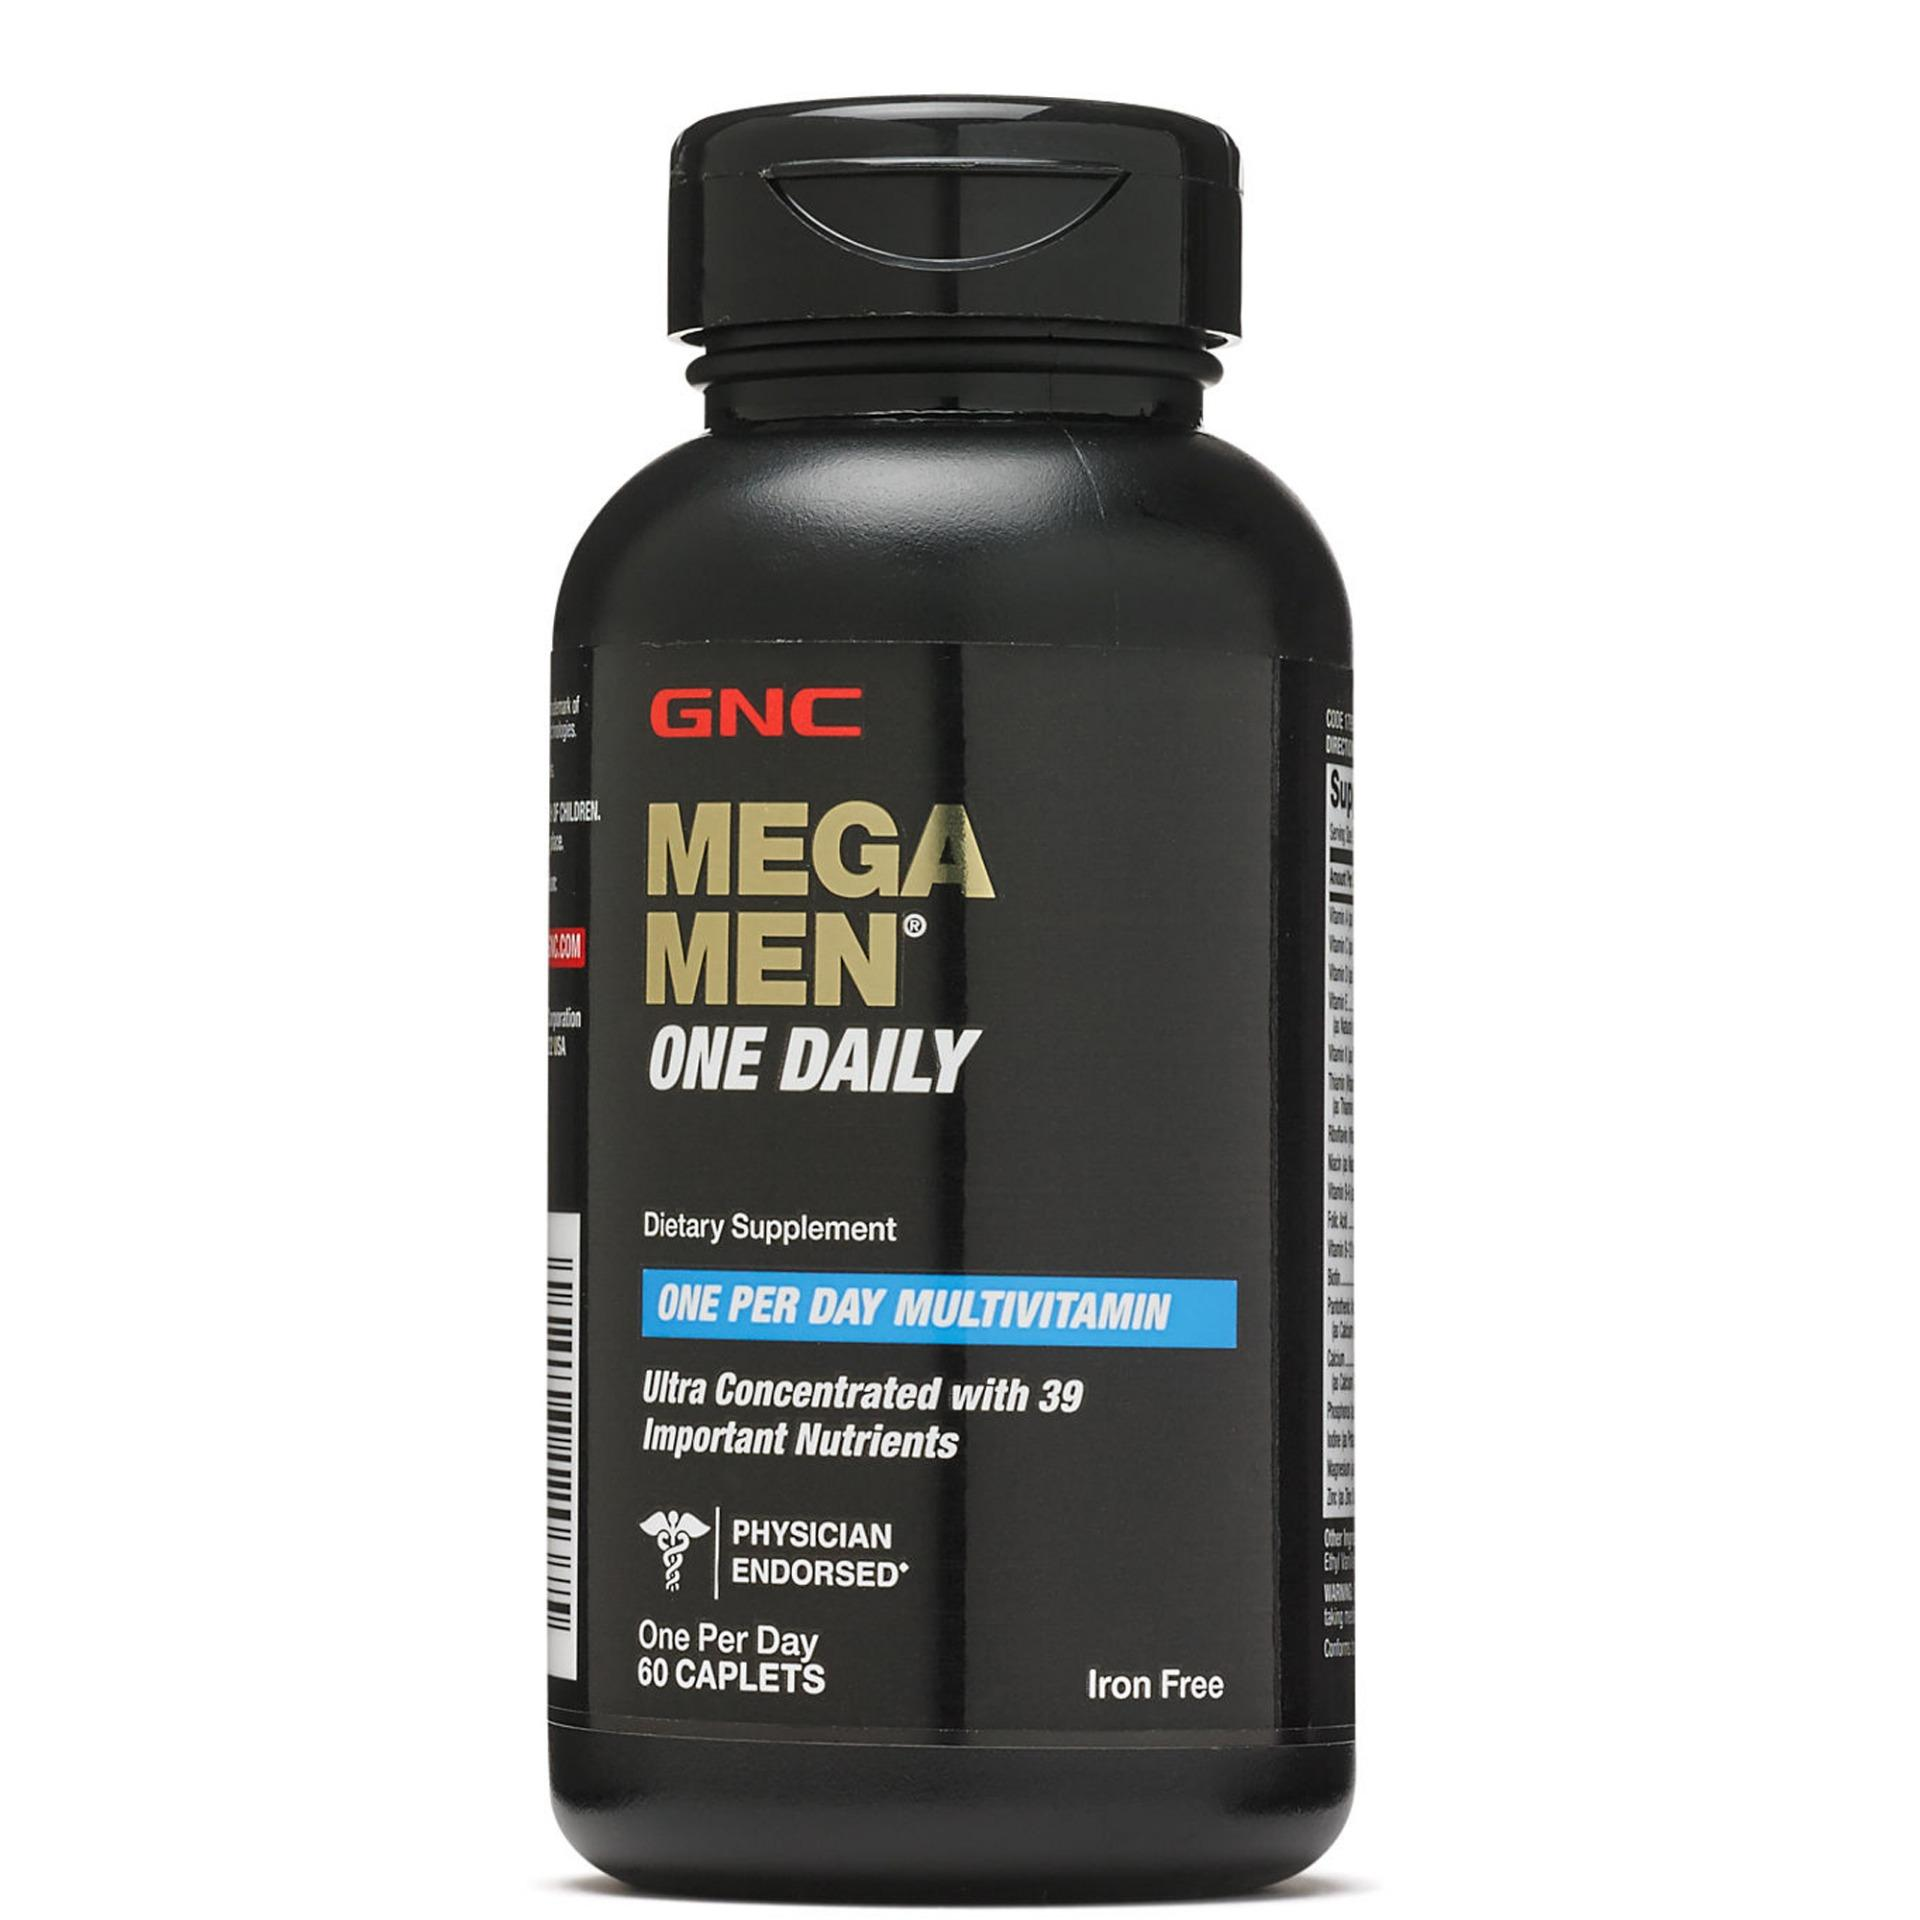 GNC Mega Men One Daily 60 Caplets